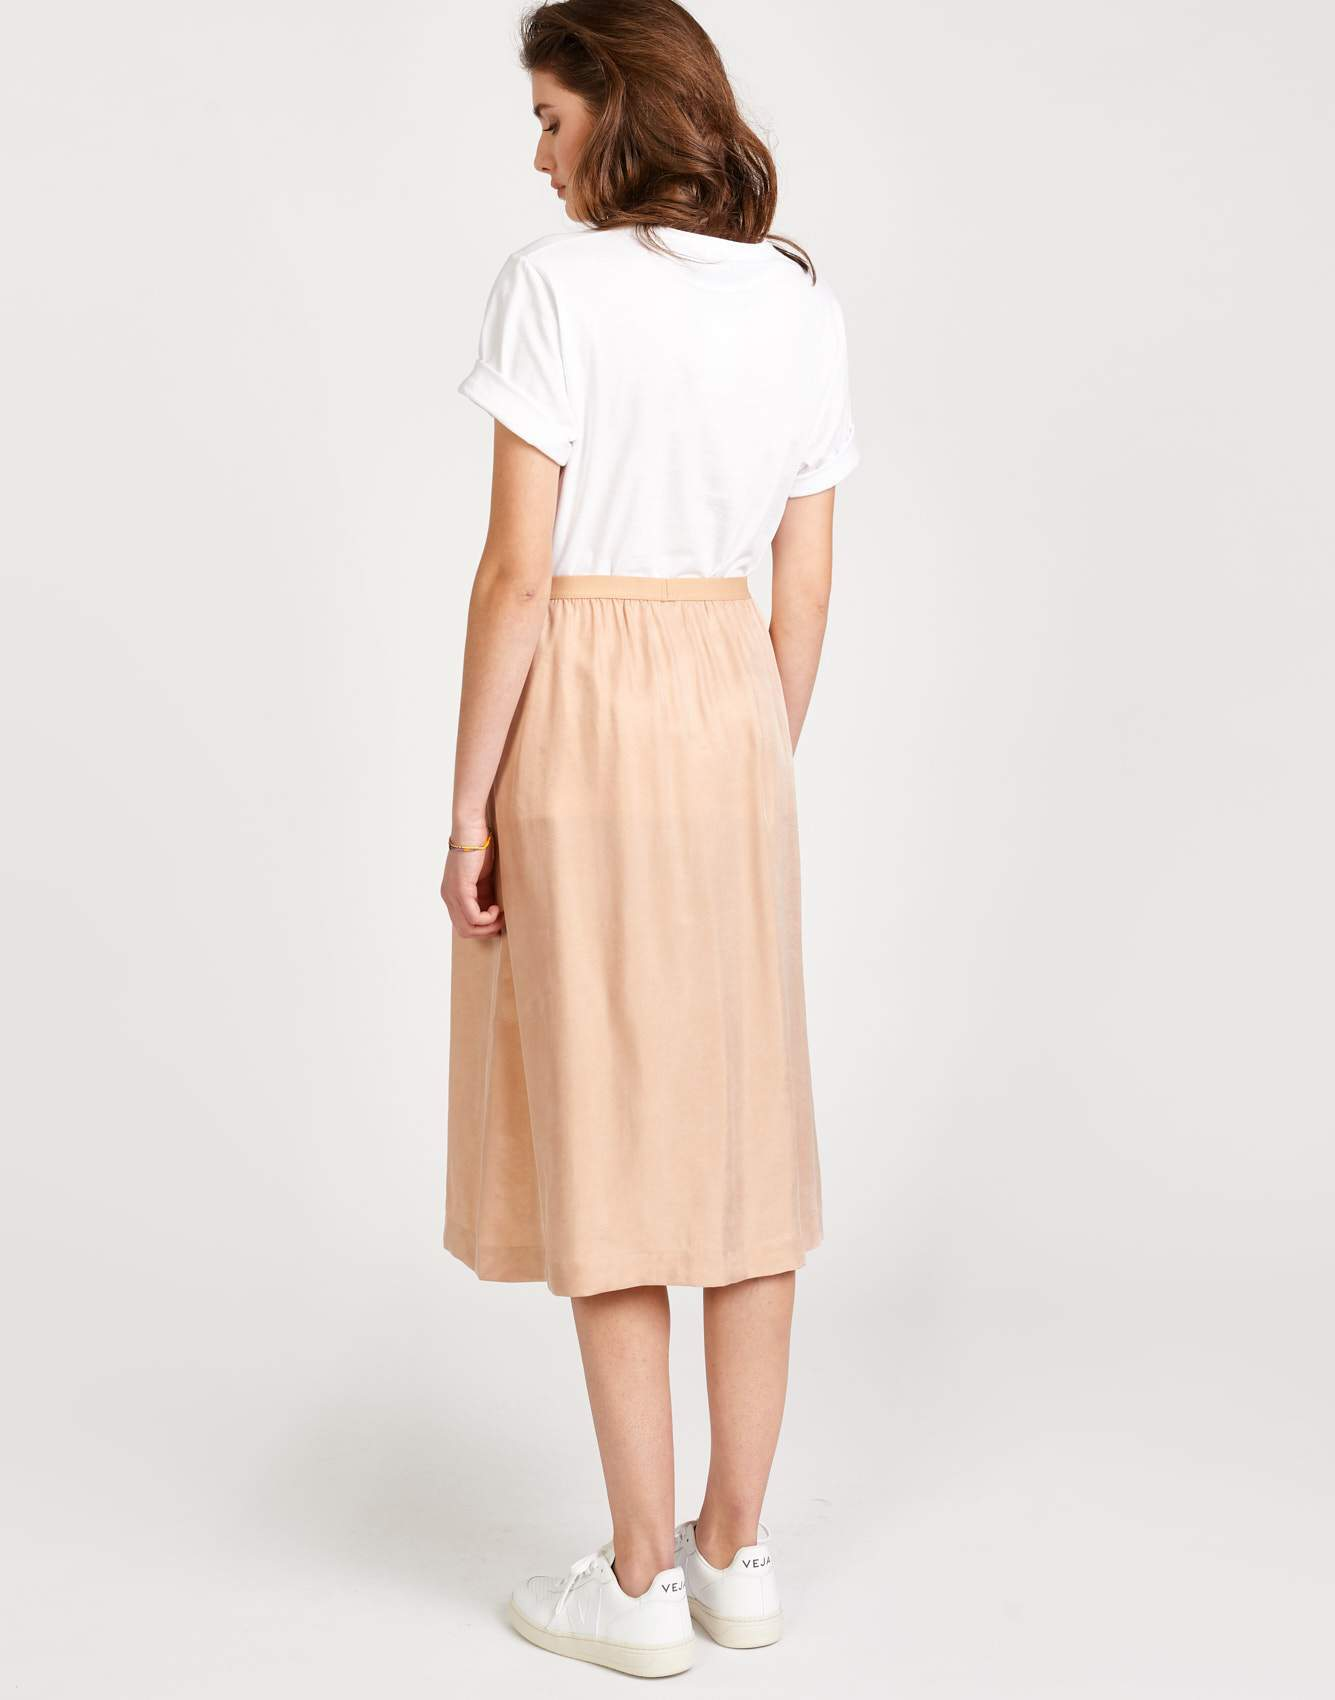 Bellerose beige viscose flared skirt for women